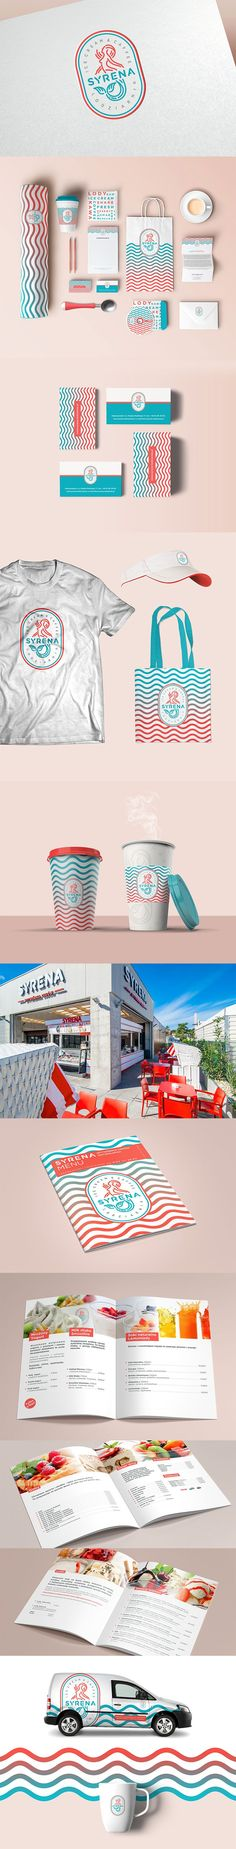 Ice Cream Branding And Packaging: A Collection of 50 Deliciously Creative Designs – corporate branding identity Corporate Design, Corporate Branding, Branding And Packaging, Cafe Branding, Brand Identity Design, Graphic Design Branding, Packaging Design, Identity Branding, Visual Identity